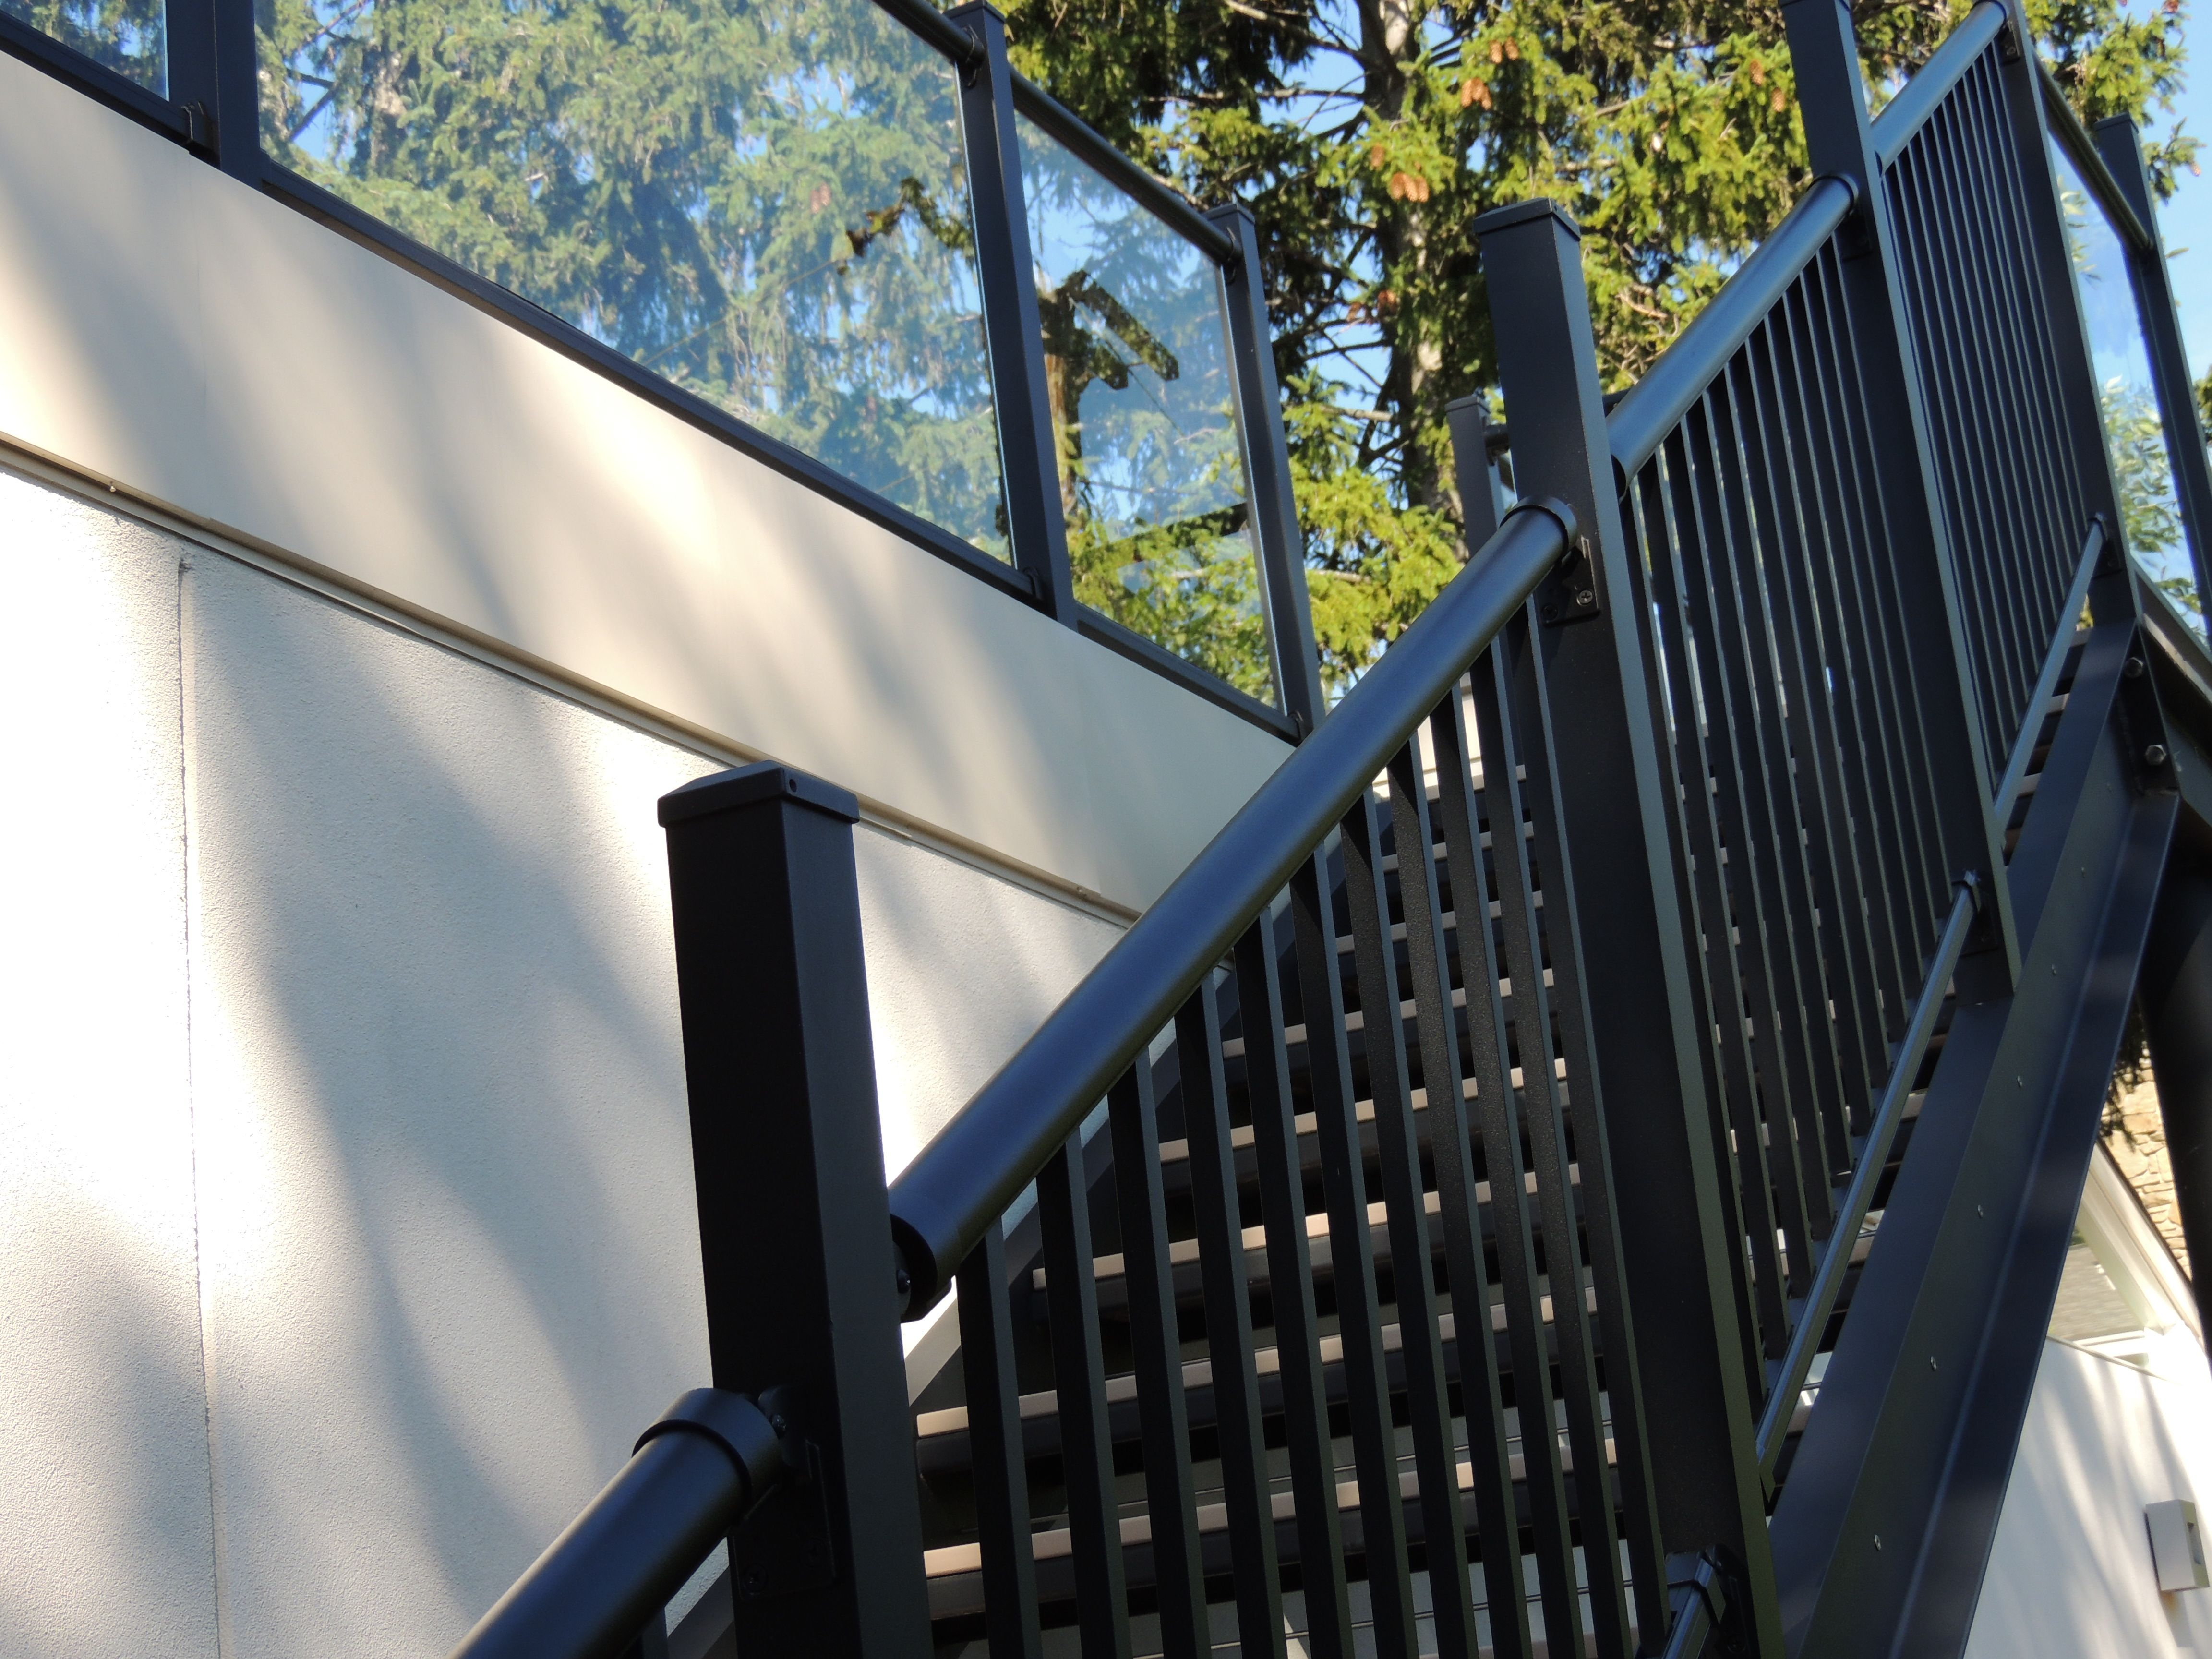 Black Ornamental Aluminum Stair Railing With Posts Left High Due To  Customers Request (wants To